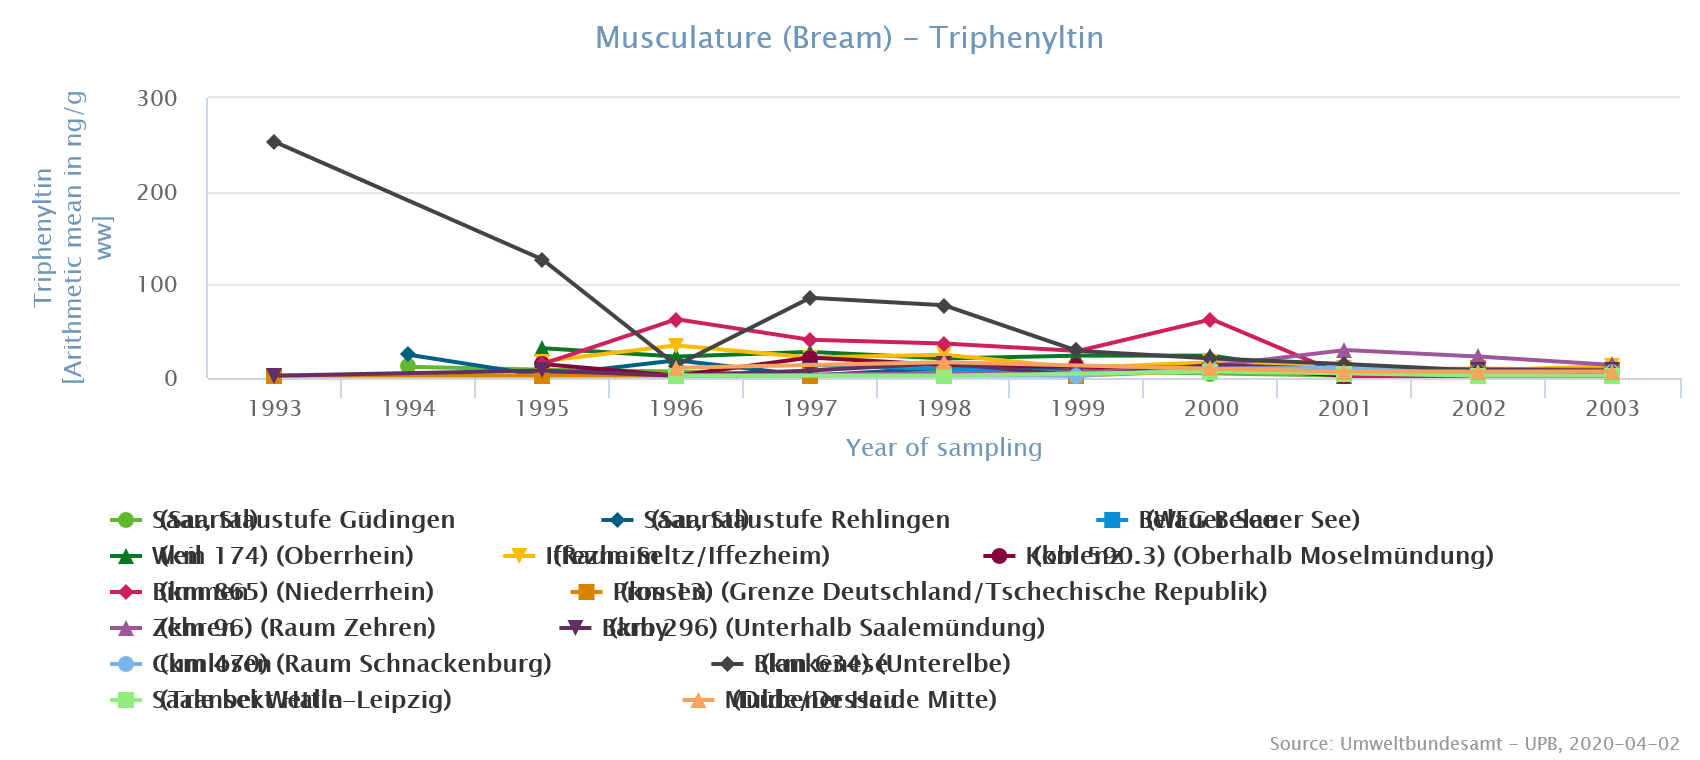 TPT levels in bream muscle from German rivers between 1993 und 2003